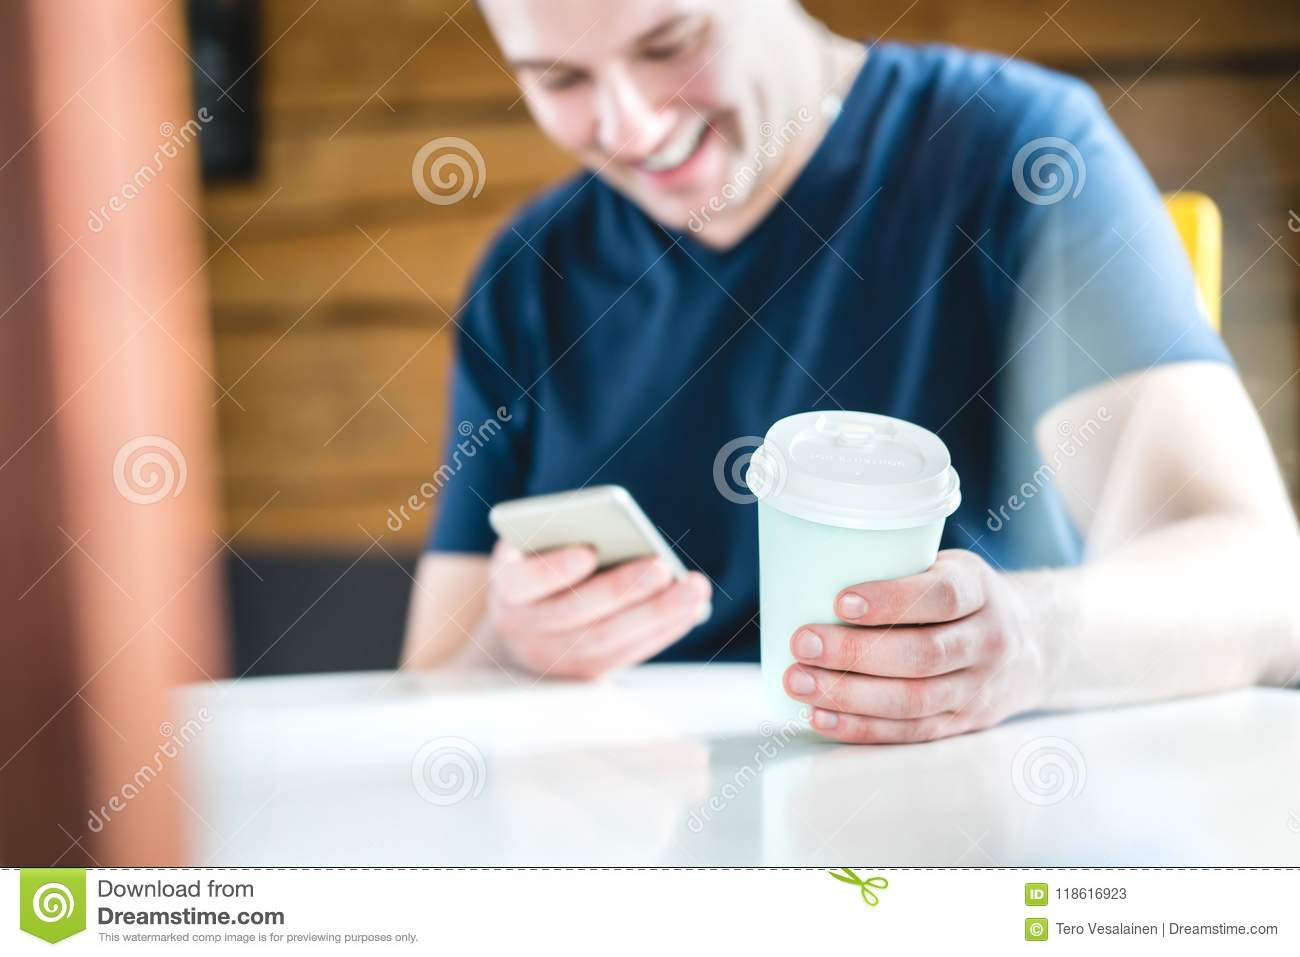 Smiling and laughing happy man using mobile phone.